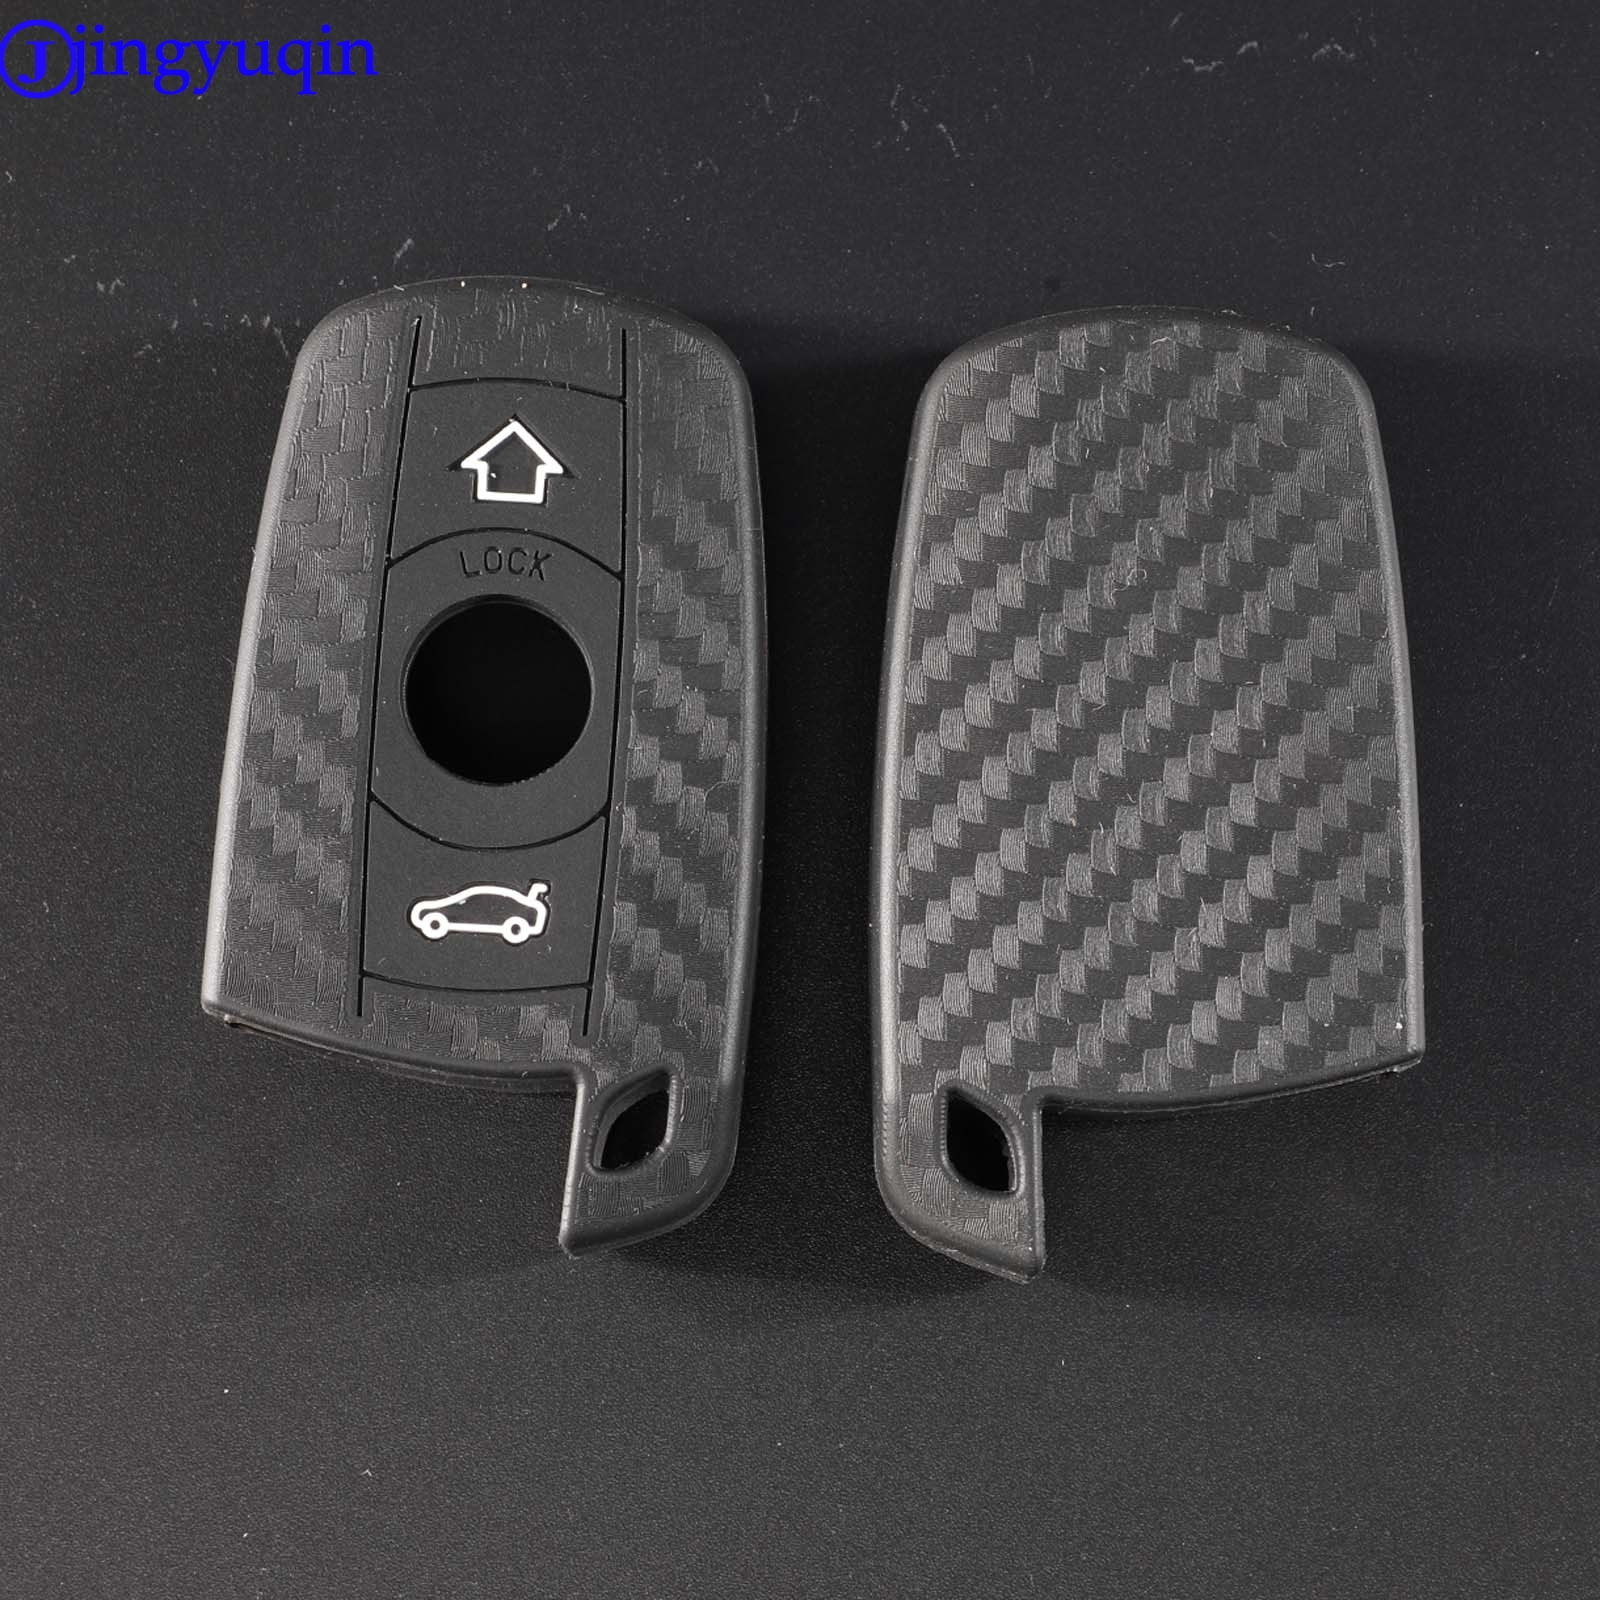 Jingyuqin 3 Buttons Carbon Fiber Patten Silicone Car Key For BMW 1 3 5 6 Series E90 E91 E92 E60 Car Key Holder Case Cover